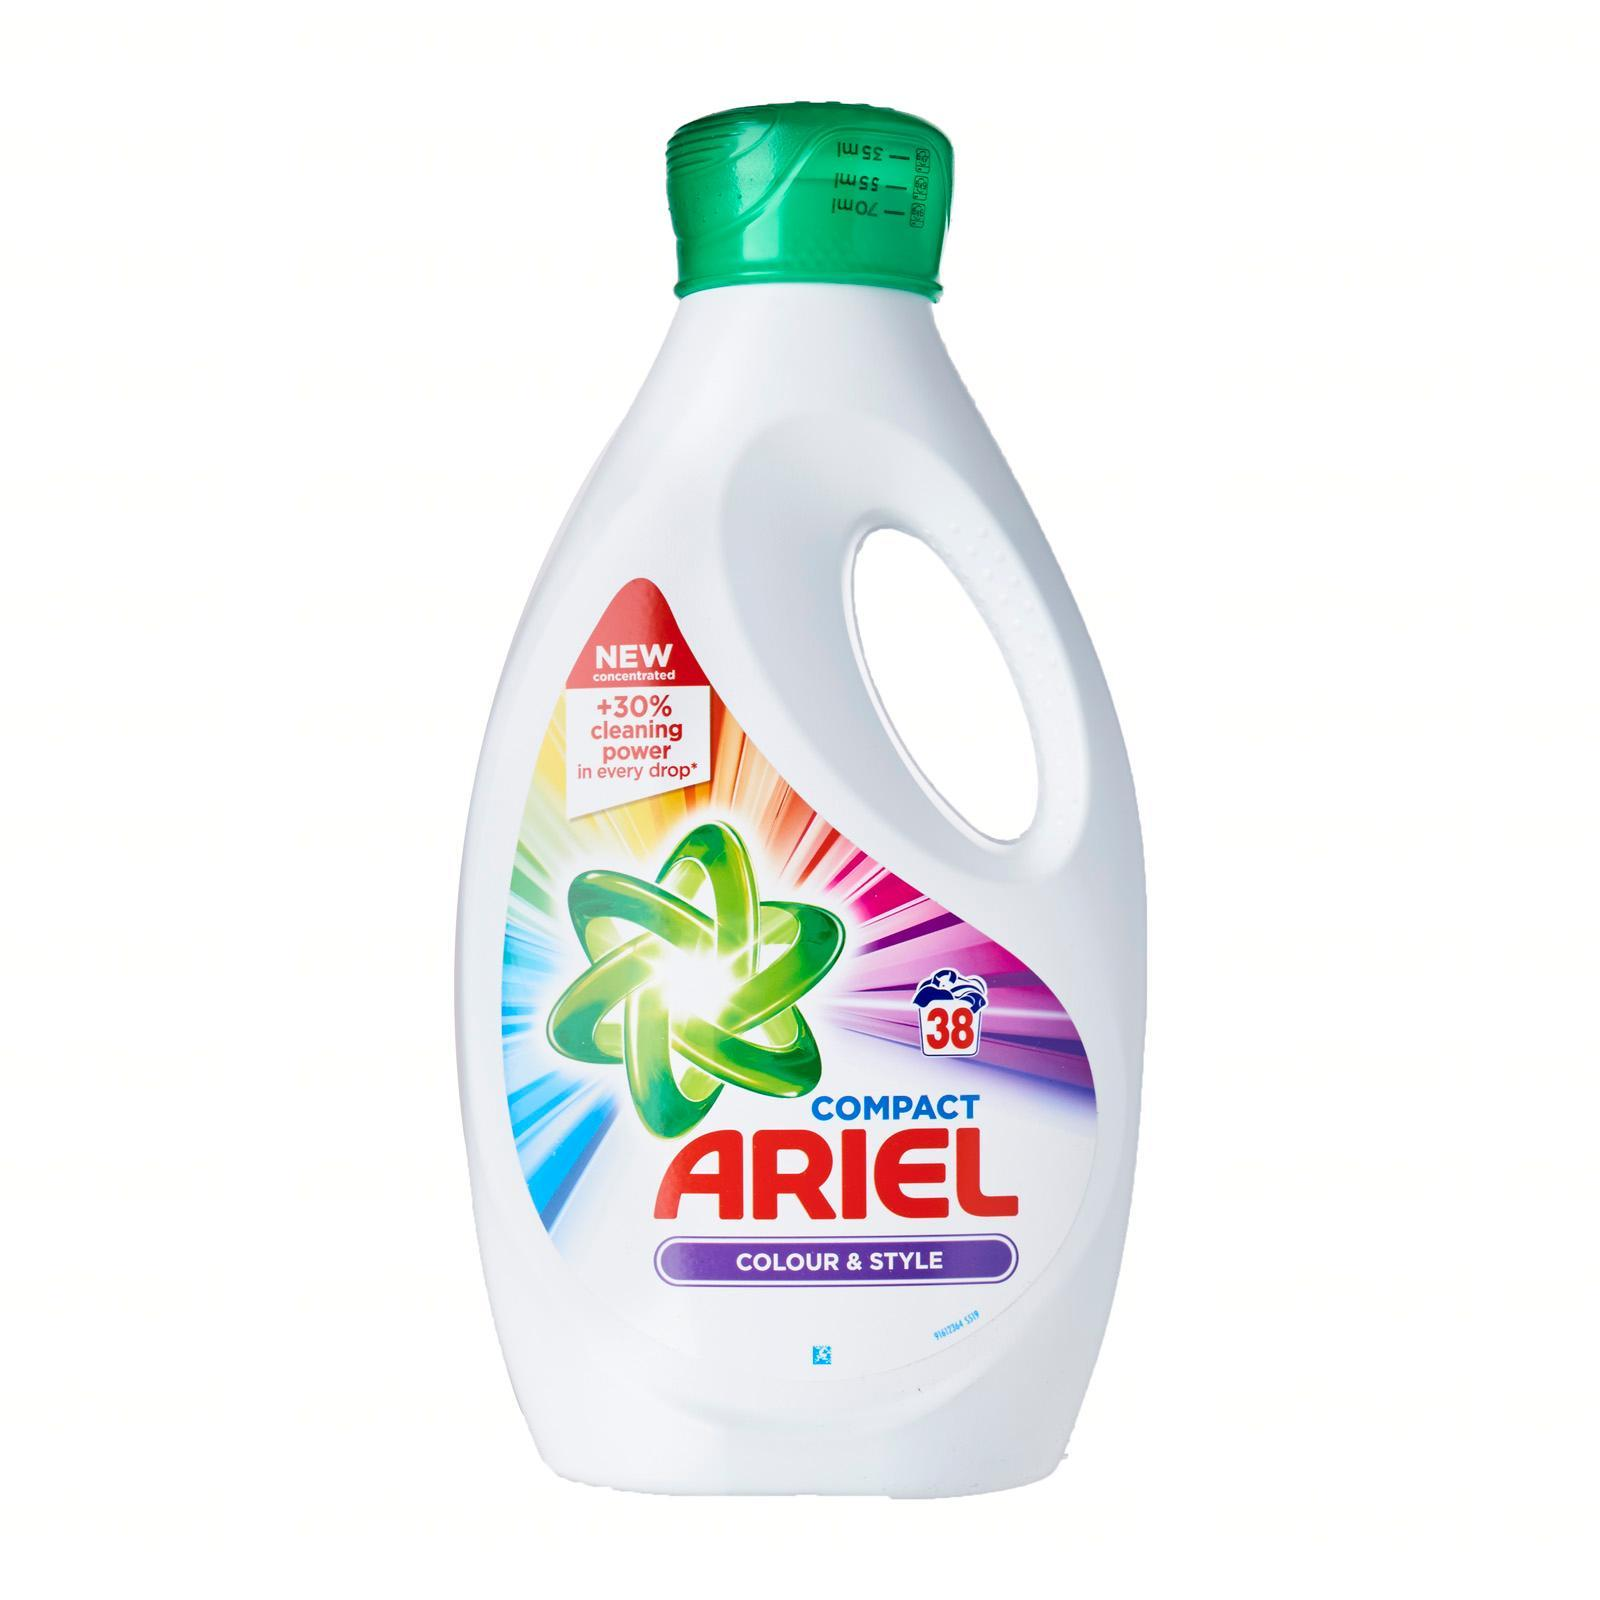 Ariel Washing Liquid Colour Detergent - Colour And Style